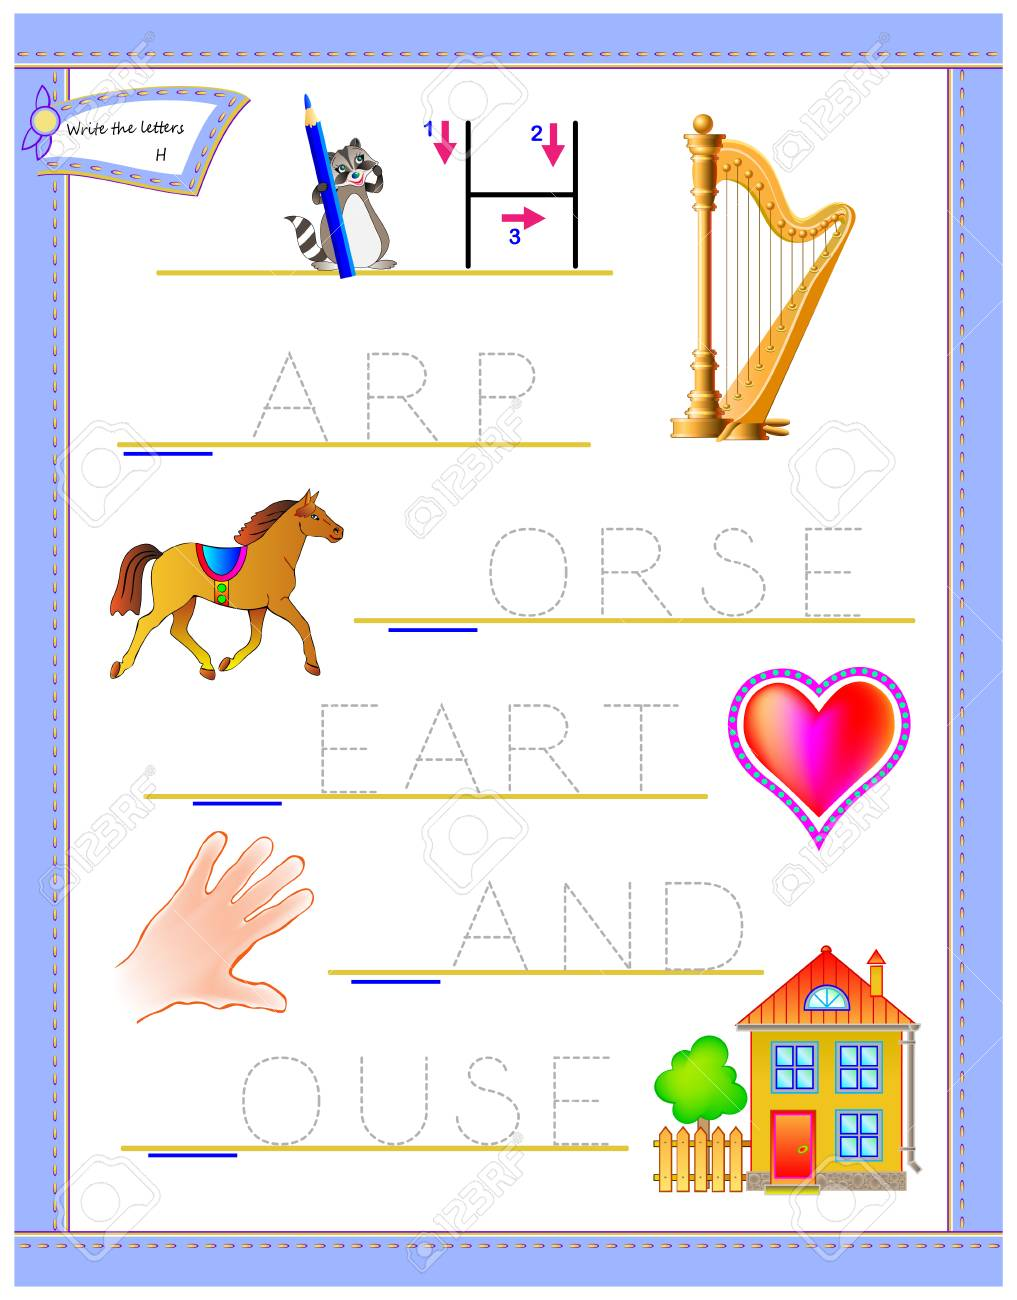 graphic regarding Letter H Printable called Tracing letter H for investigate English alphabet. Printable worksheet..